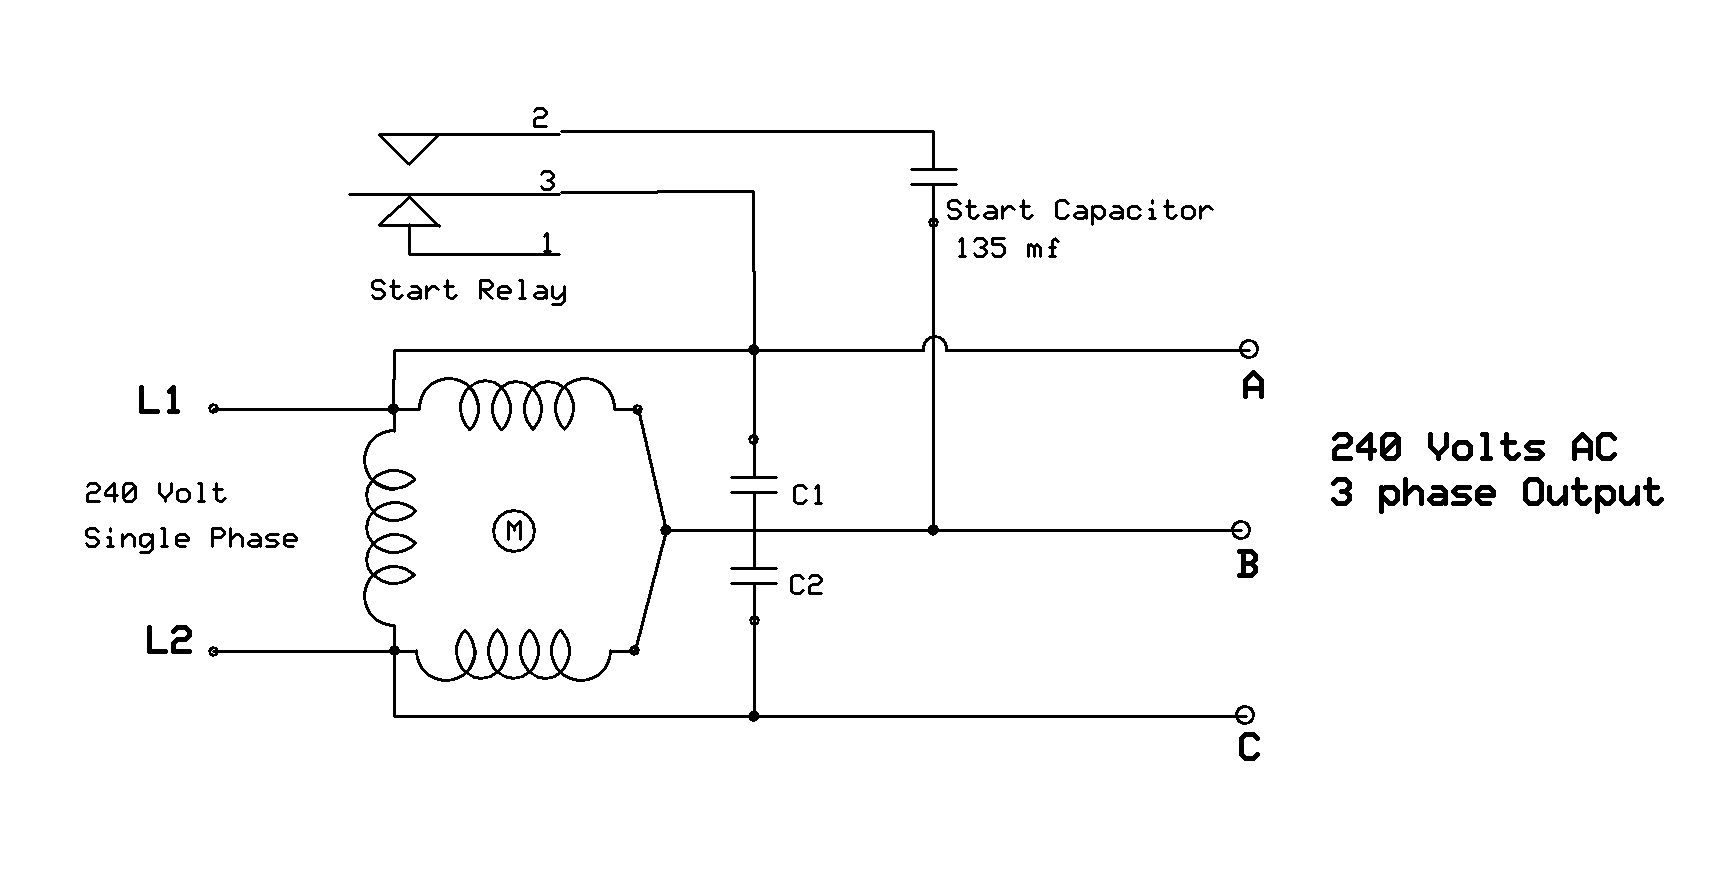 V Motor Wiring Diagram Single Phase Collection Wiring Diagram - 240v motor wiring diagram single phase